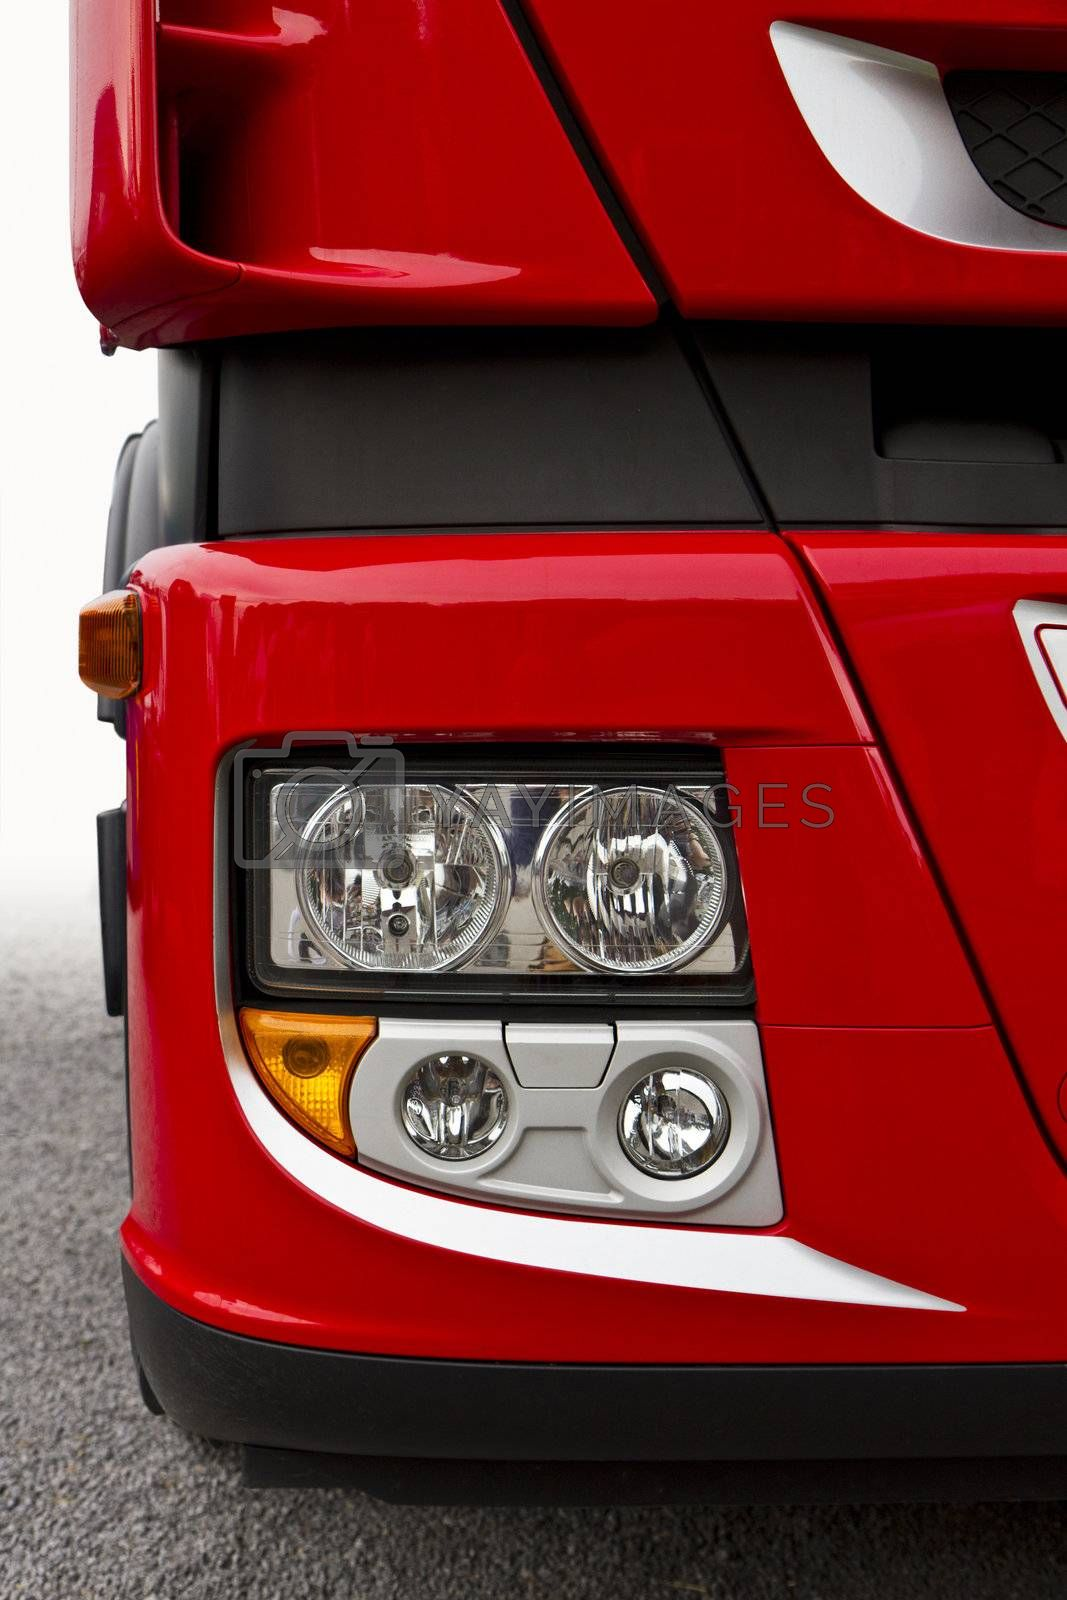 front view of red truck, font light